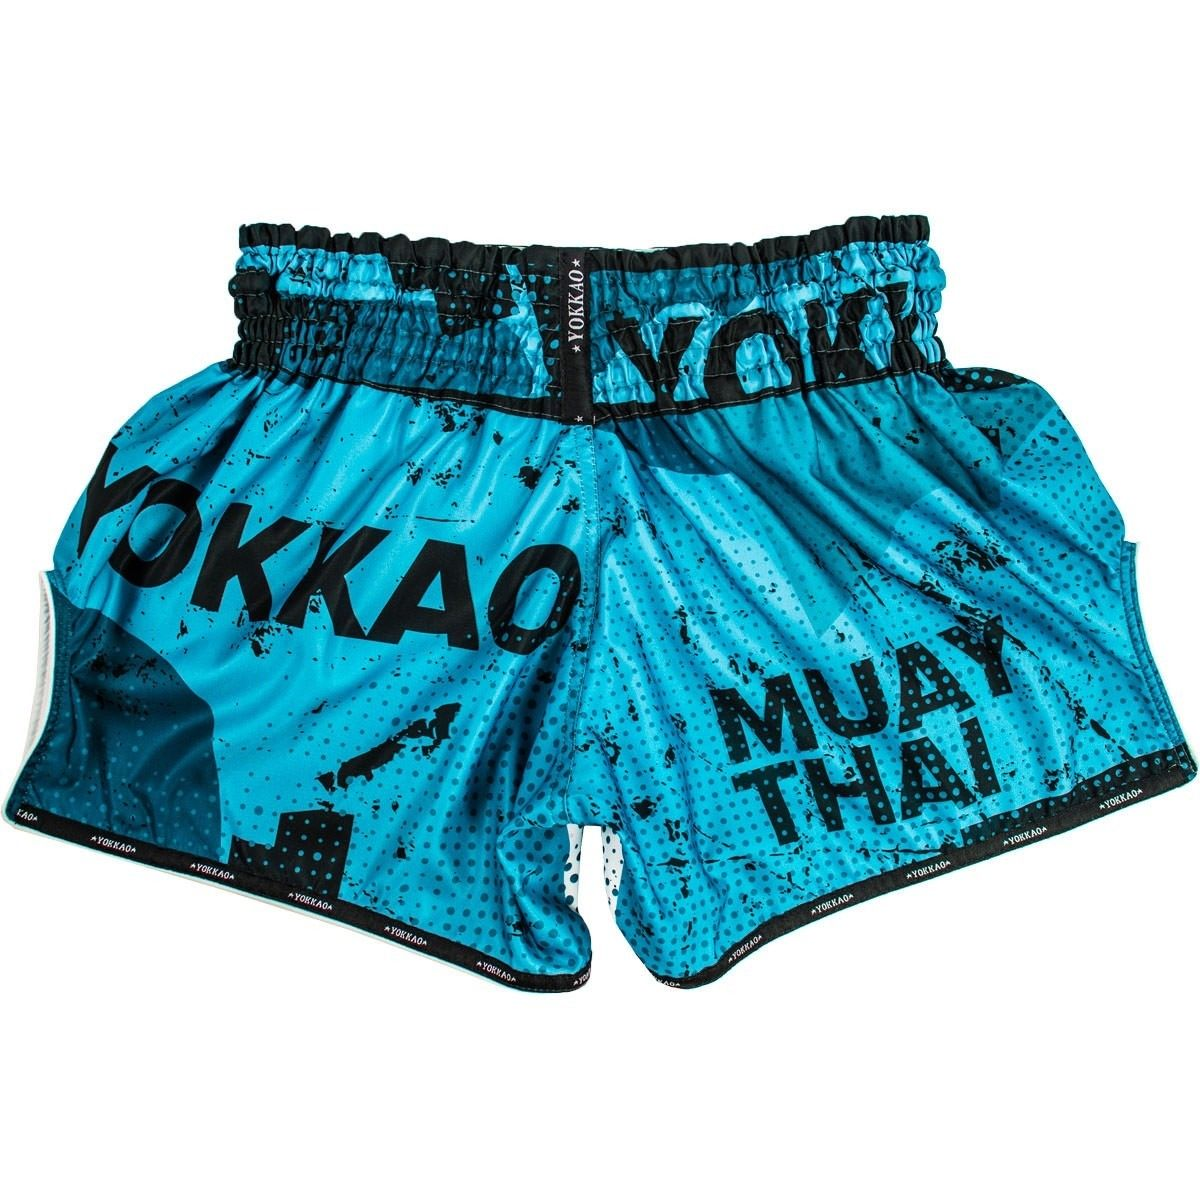 Yokkao Muay Thai Shorts Carbonfit Urban Blue Thai Boxing Kickboxing Striking K1